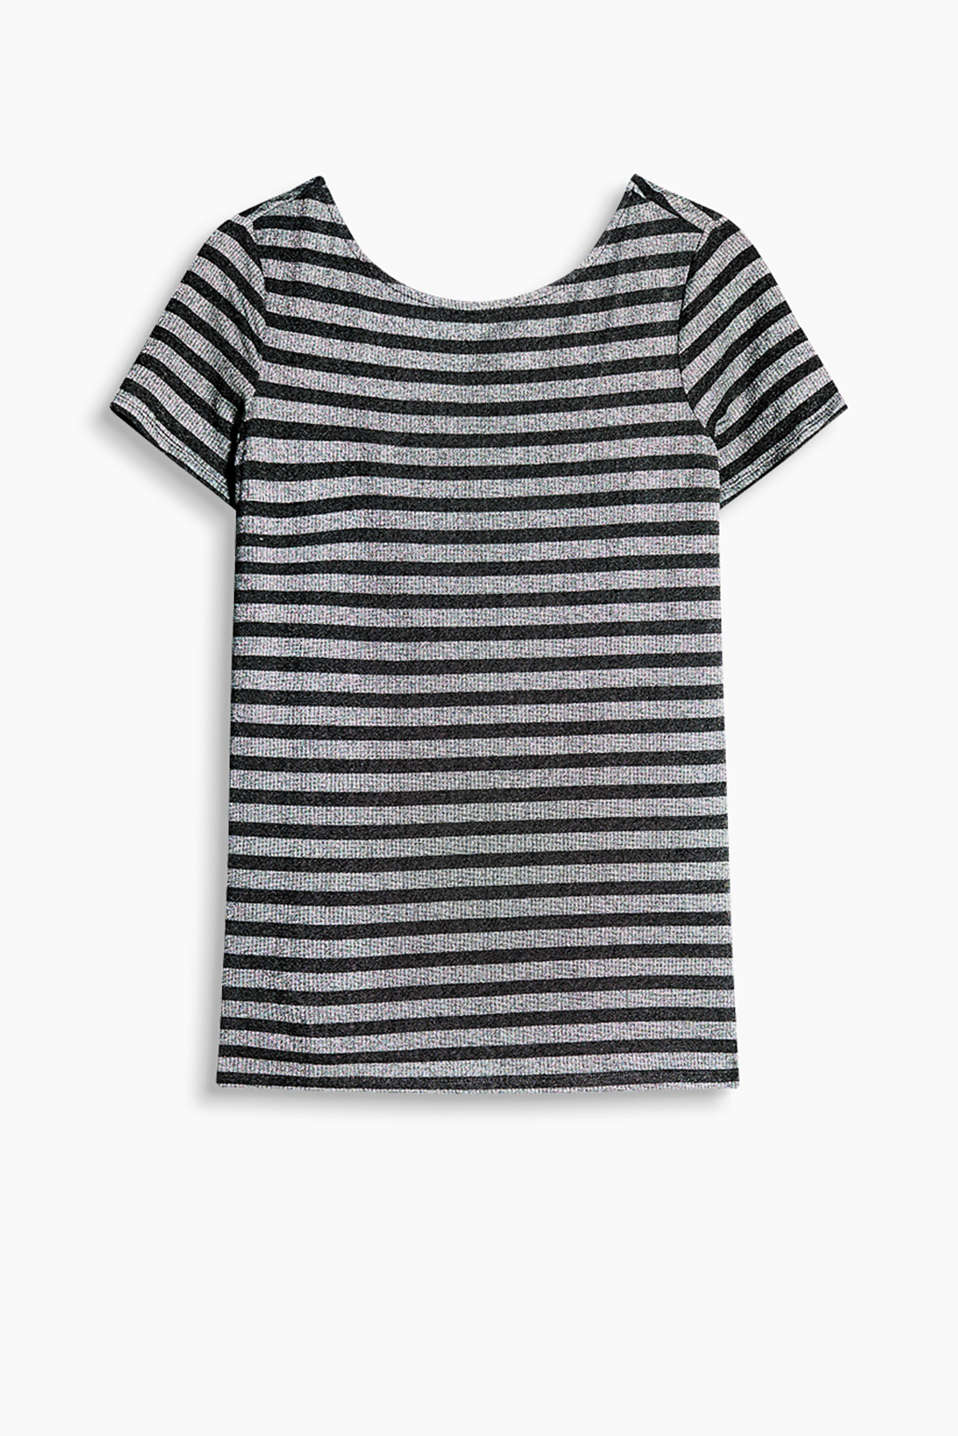 Fabric blend T-shirt with a low back neckline